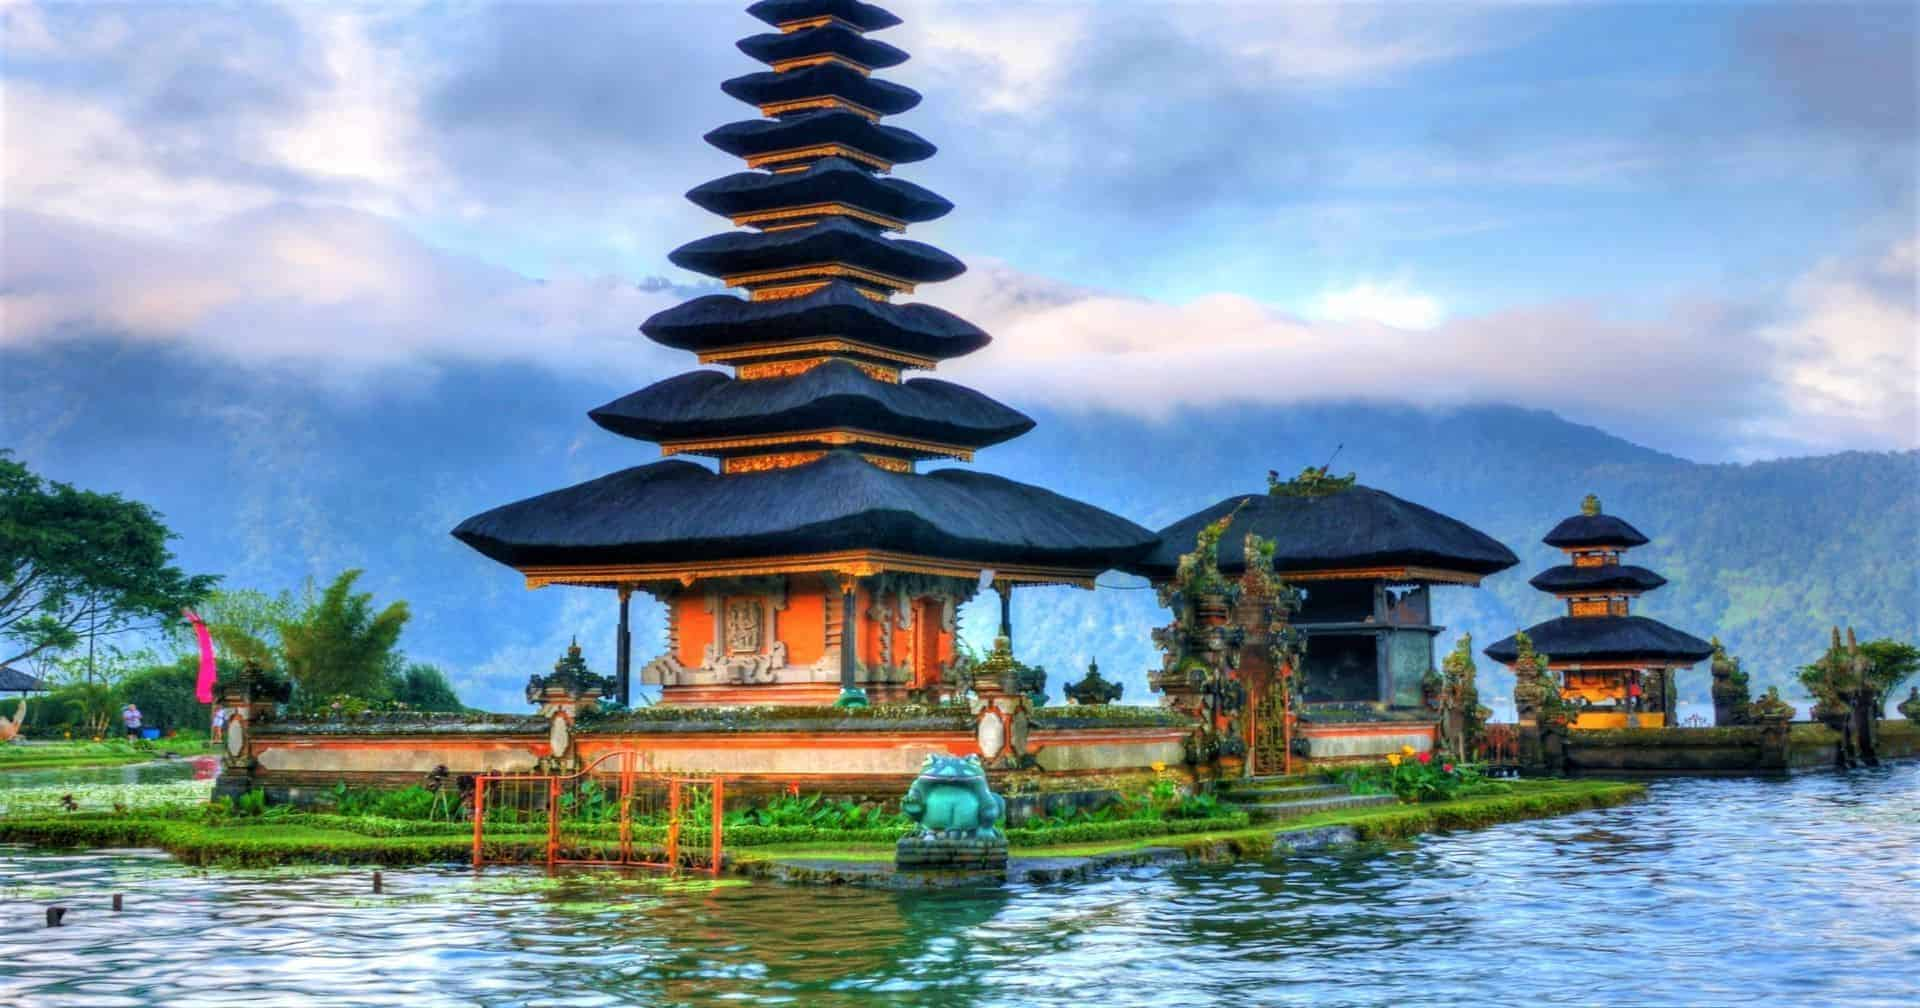 Top 20 Things to do in Bali (Indonesia)